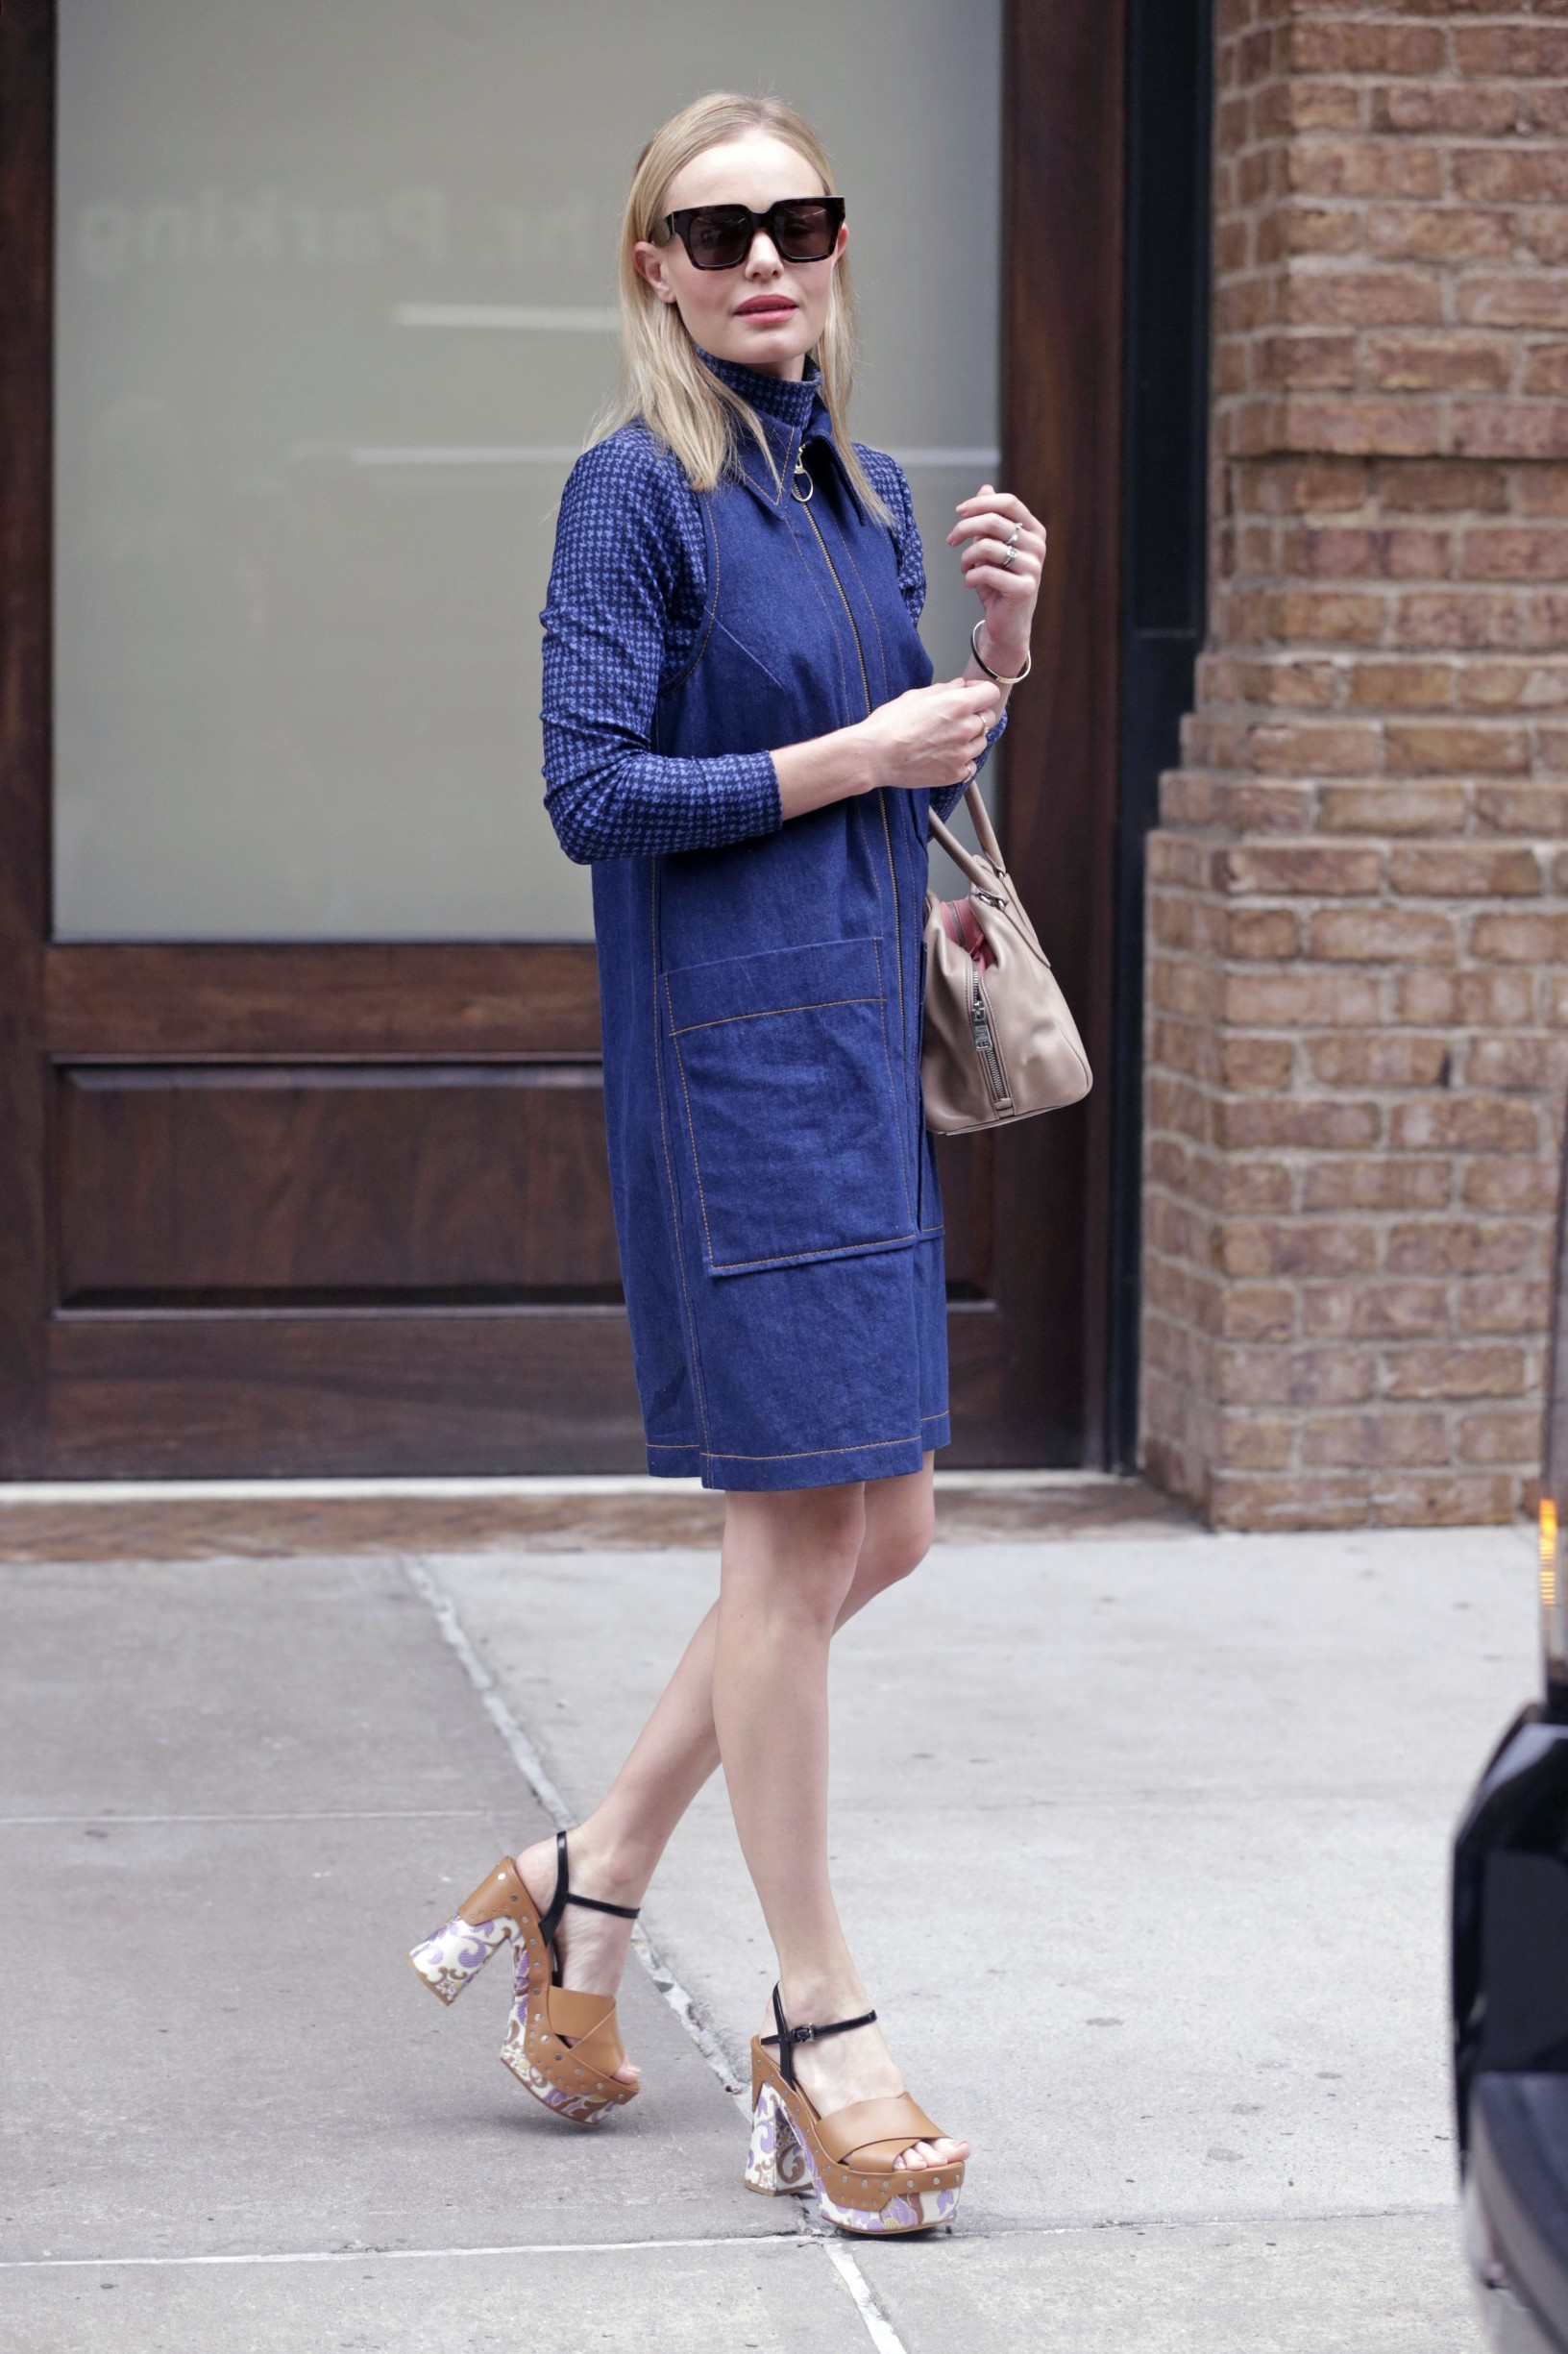 142261, Kate Bosworth wears a collared zip up denim dress with chunky brown heels accented with a paisley print while exiting The Greenwich Hotel in NYC. New York, New York - Friday September 11, 2015., Image: 258205578, License: Rights-managed, Restrictions: , Model Release: no, Credit line: PacificCoastNews / Pacific coast news / Profimedia